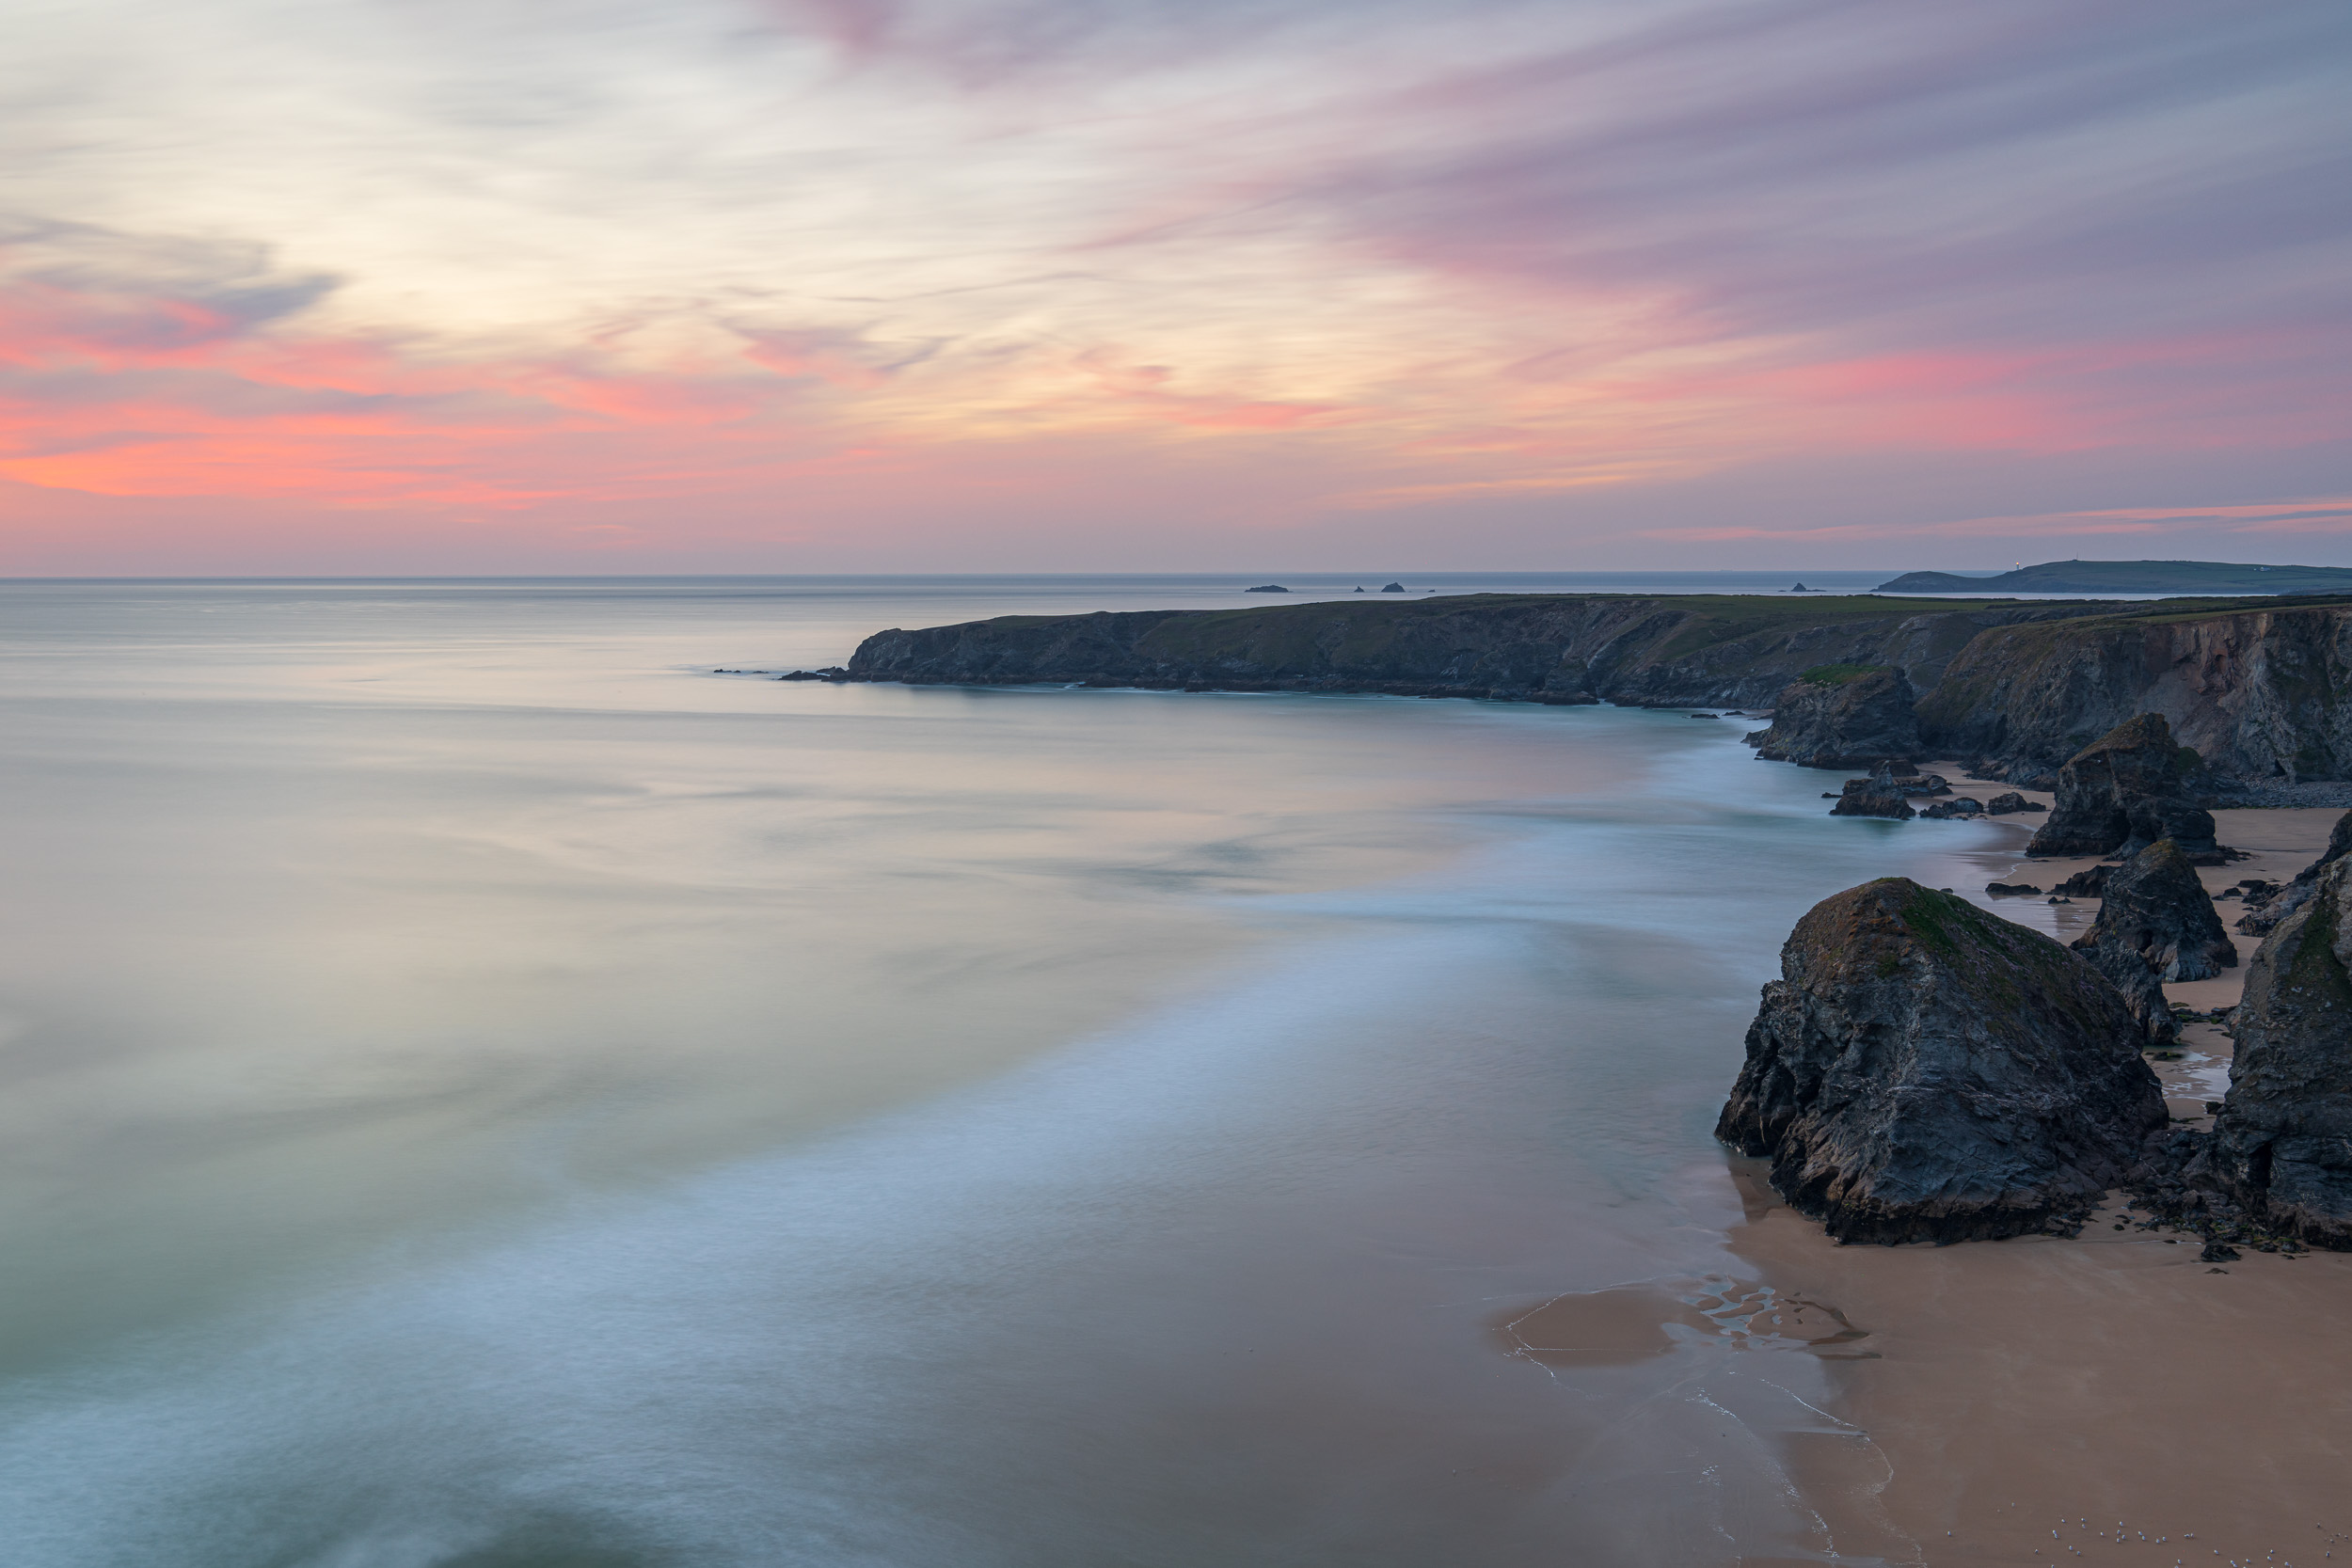 Last Light at Bedruthan, Bedruthan Steps, Cornwall  - Nikon D850, Nikkor 24-70 mm f/2.8 at 42 mm, f/8, 136 sec at ISO 64, Kase CPL, ND and ND grad.